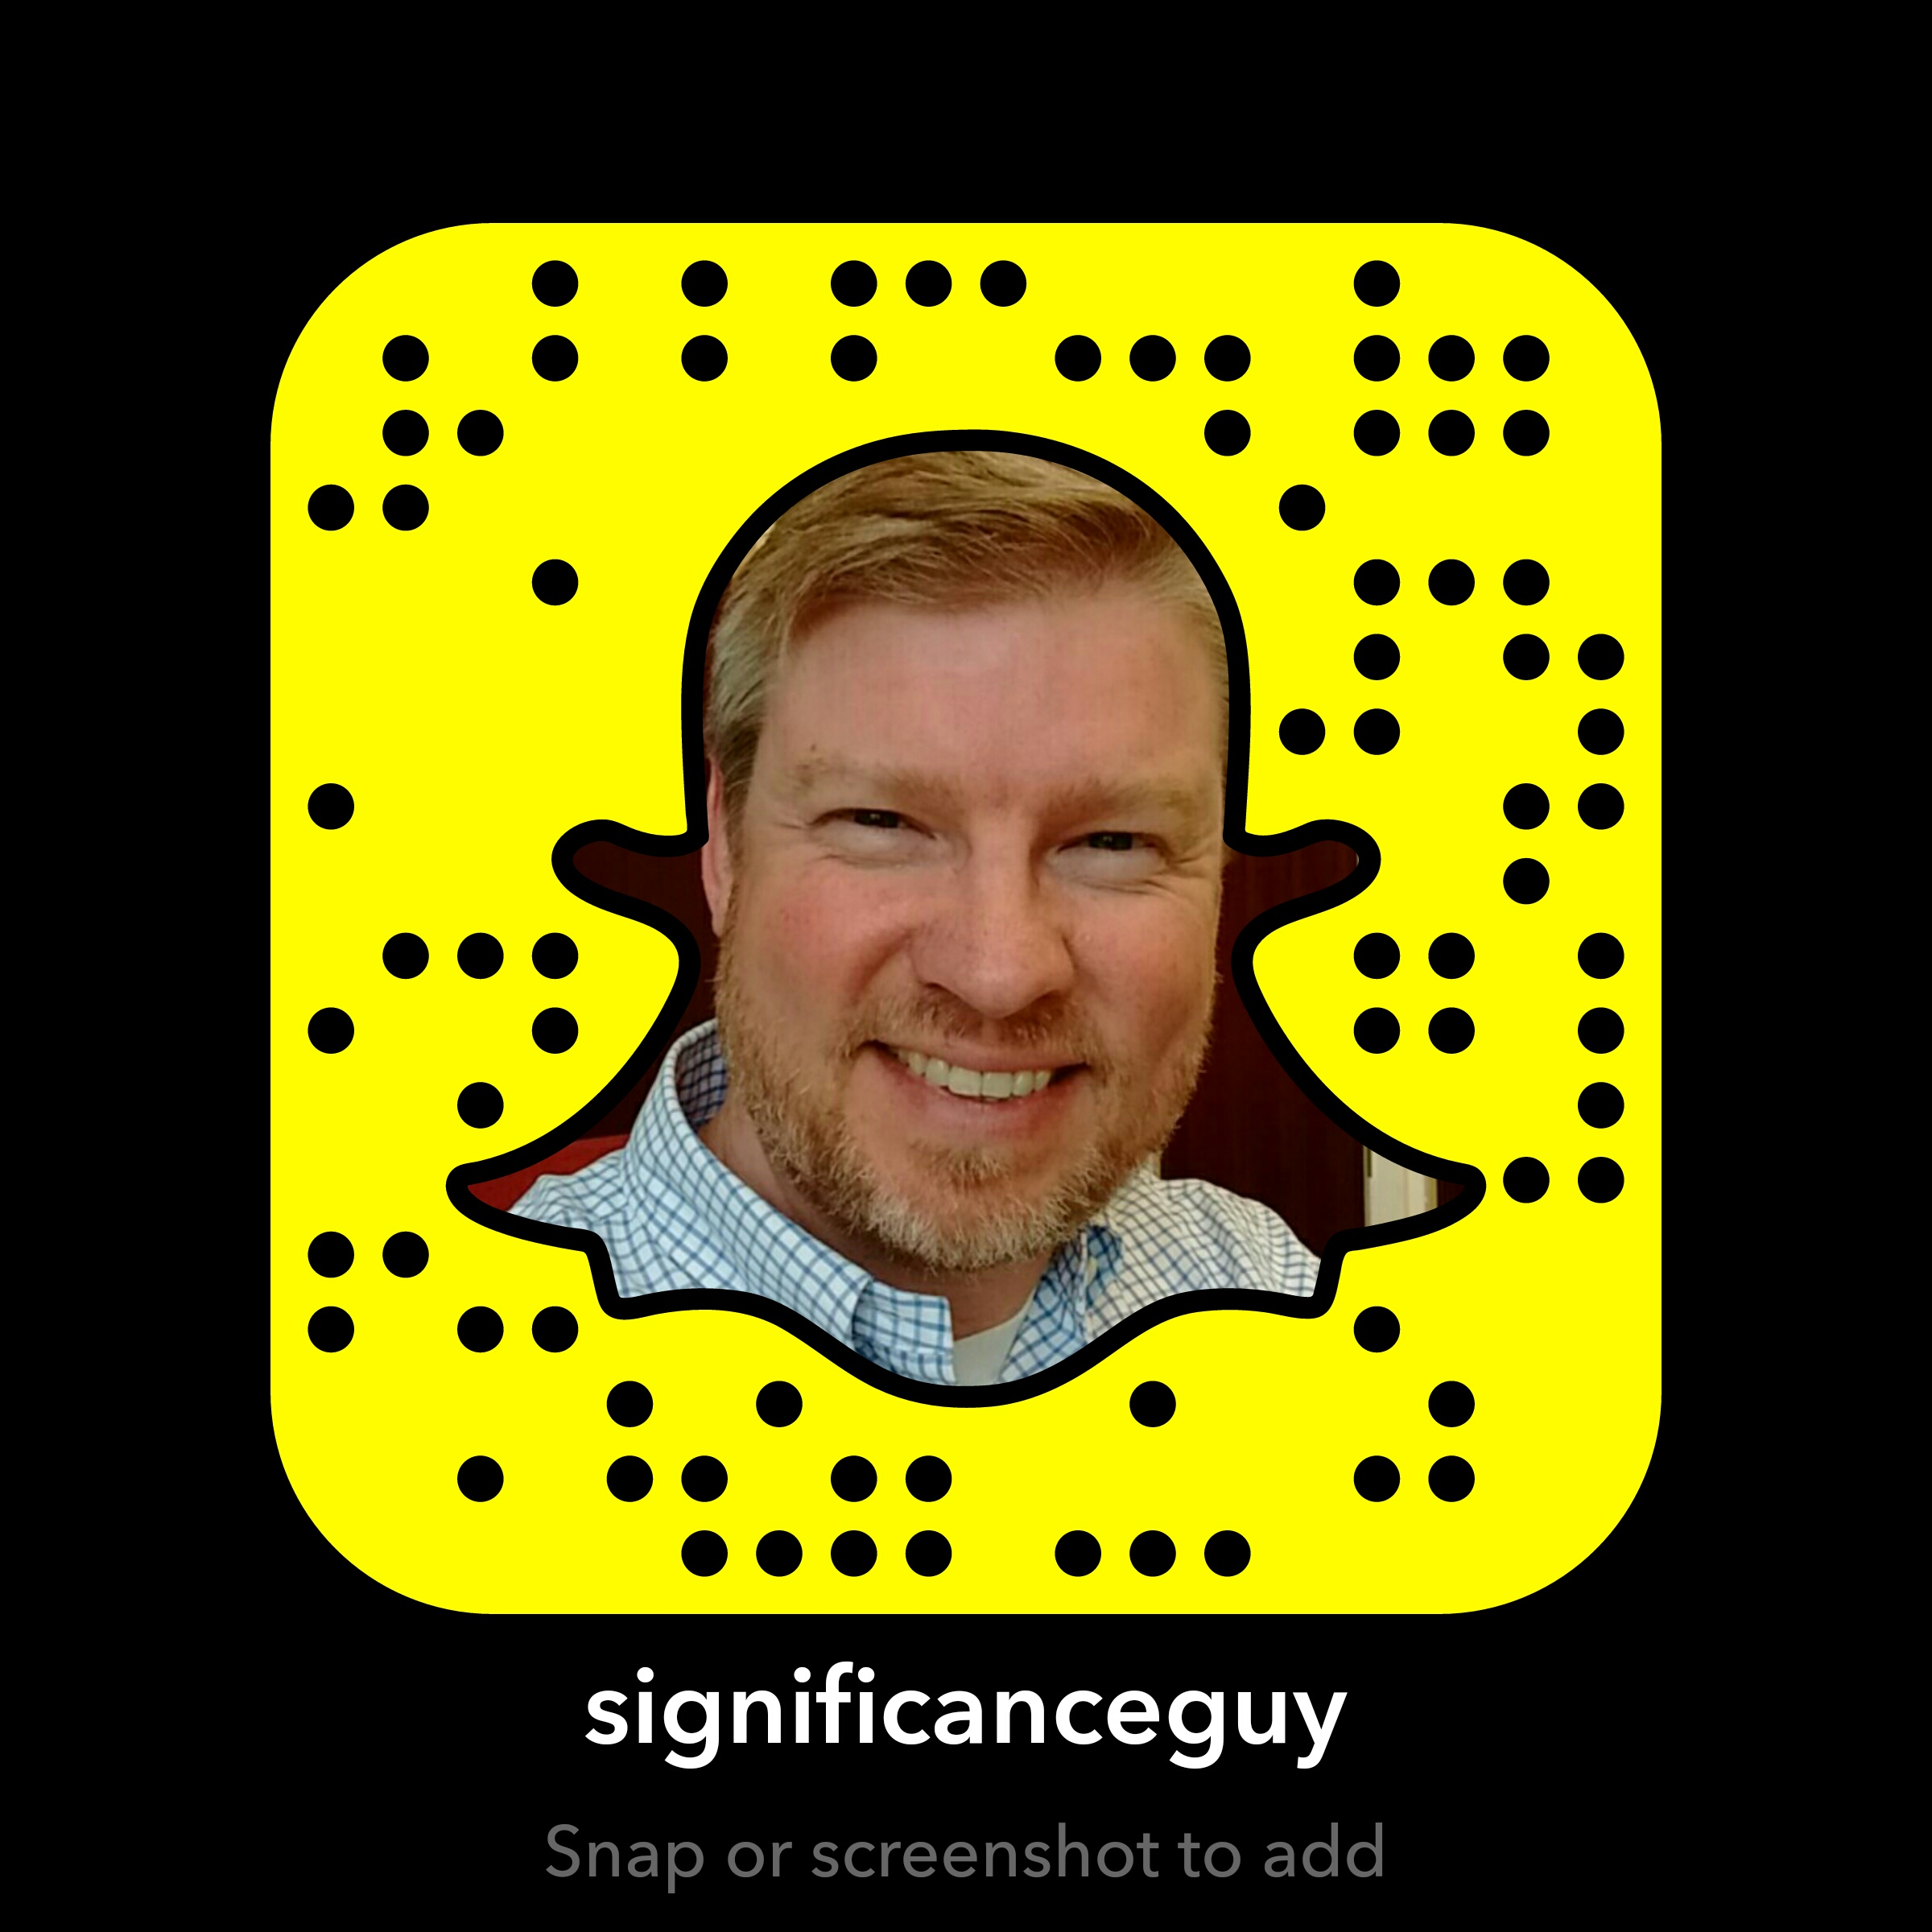 SnapChat significanceguy